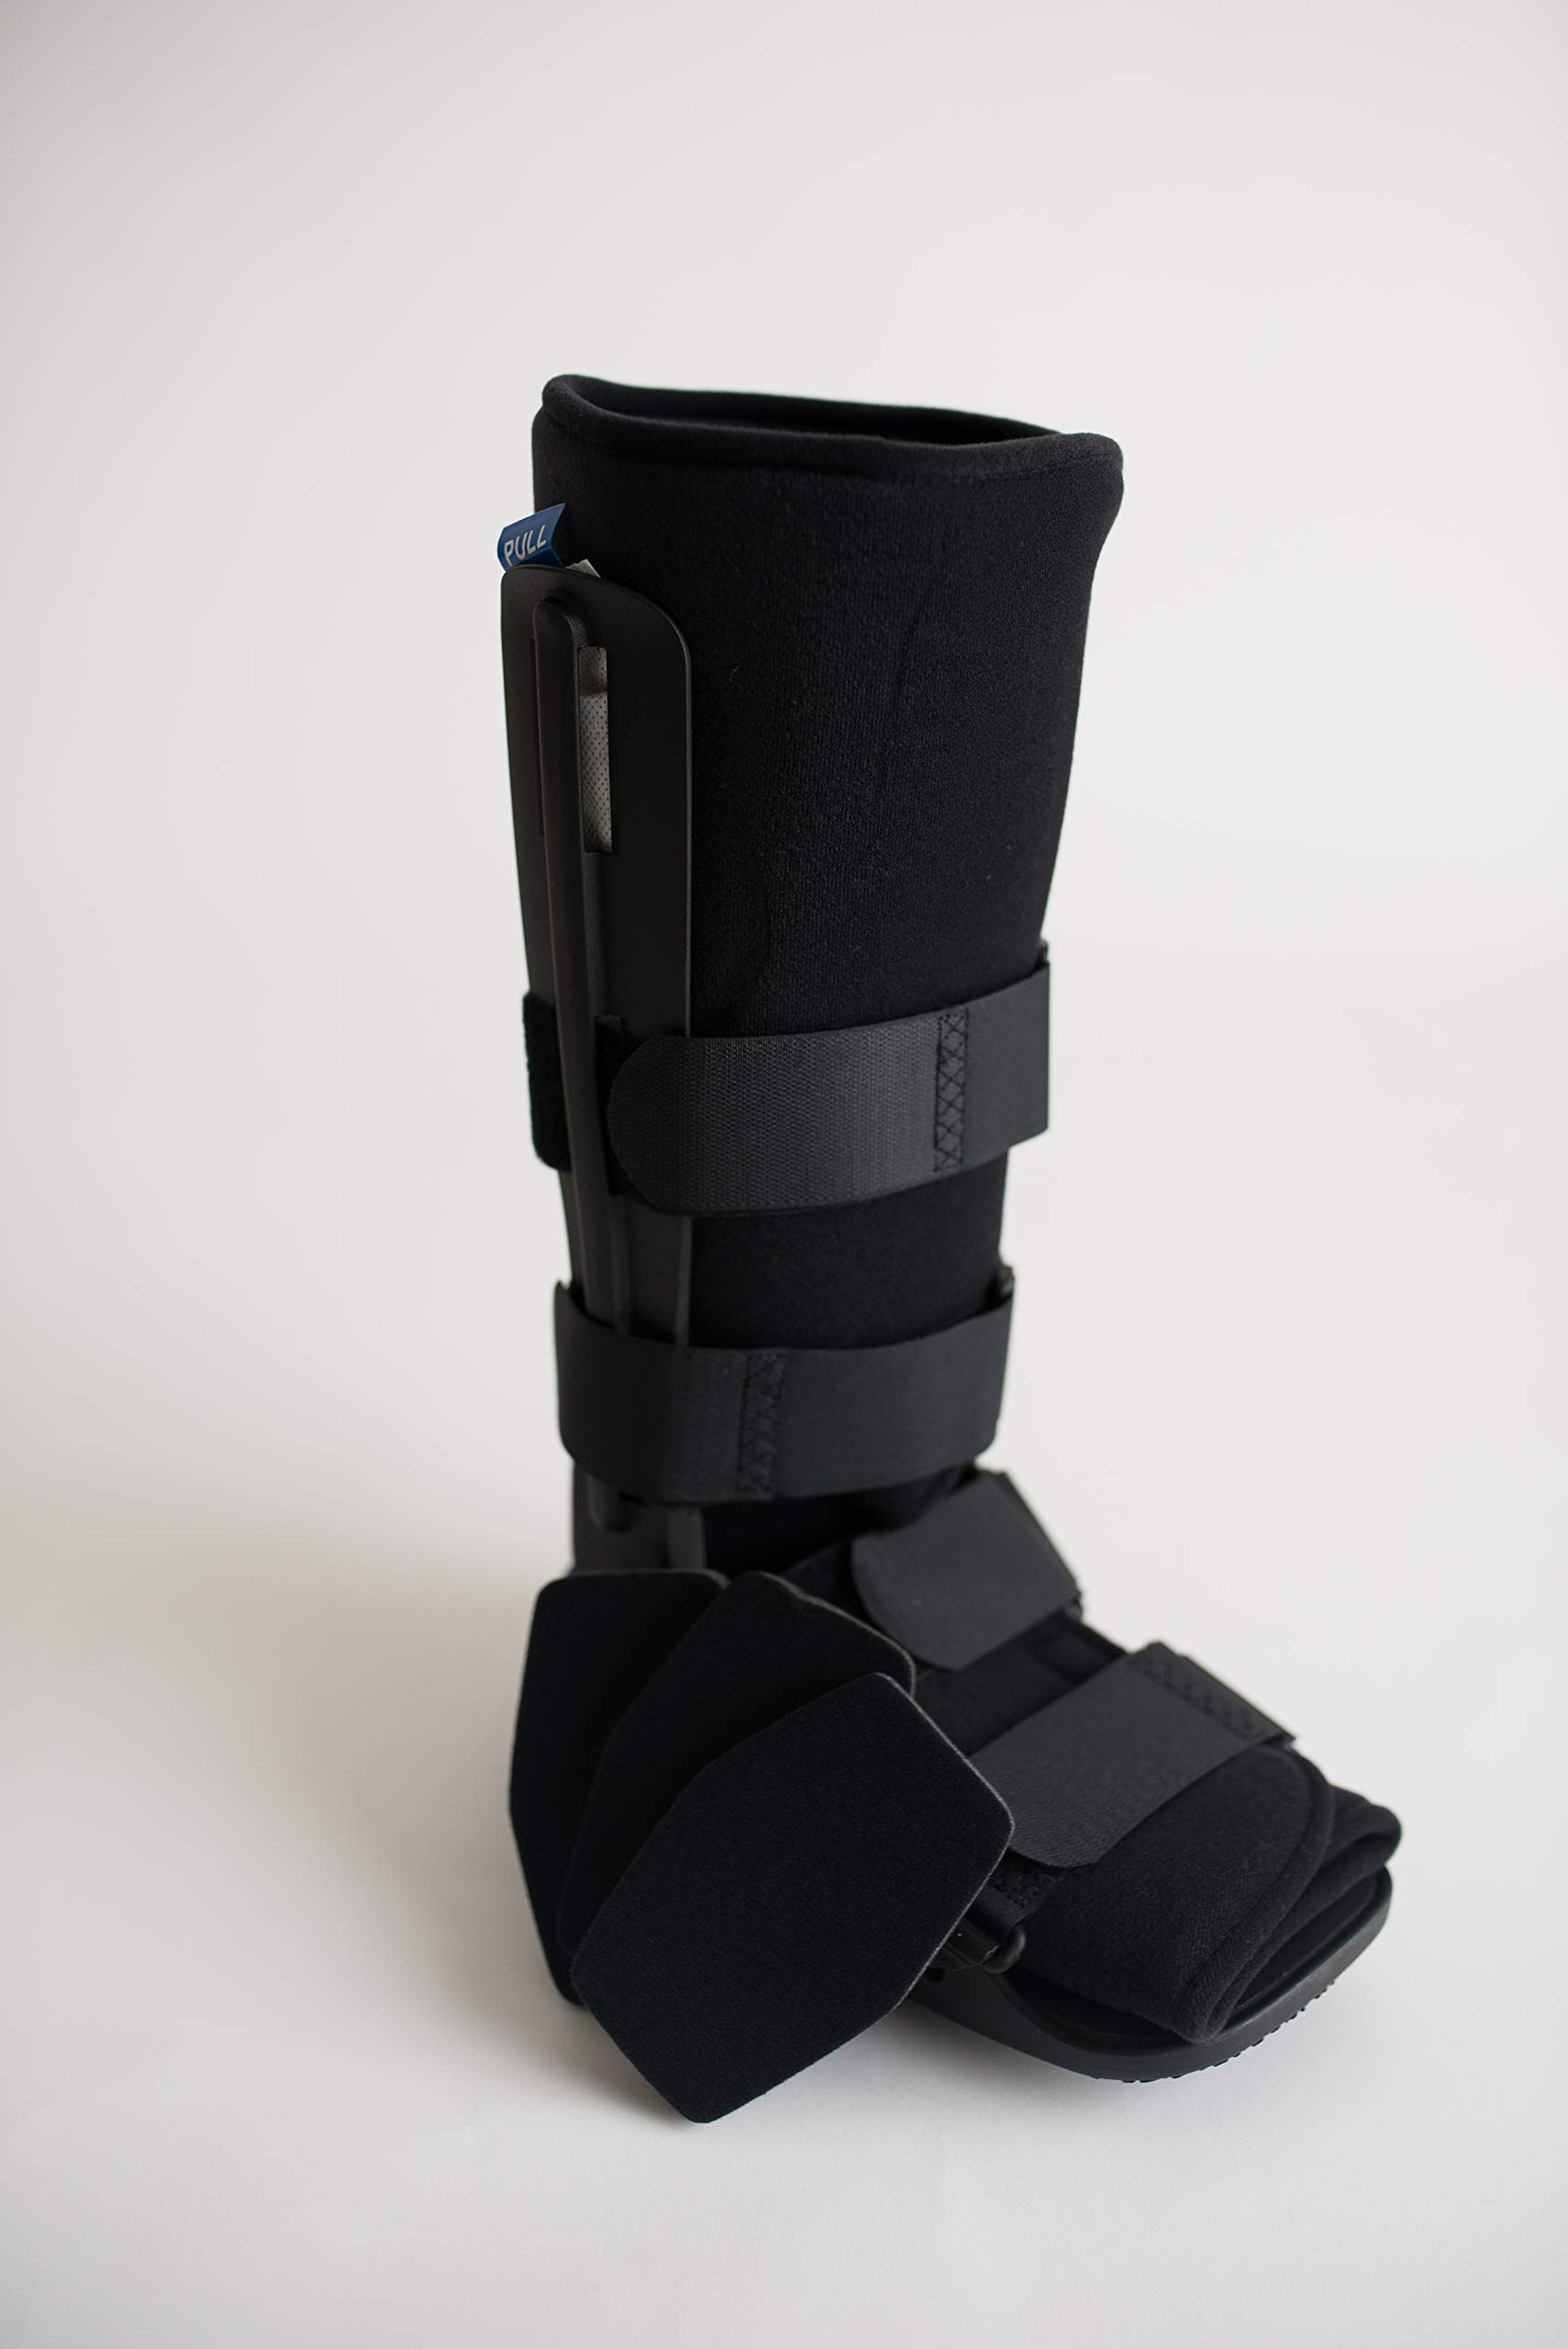 The Orthopedic Guys High Top Non-Air Walker Fracture Boot (XL) by The Orthopedic Guys